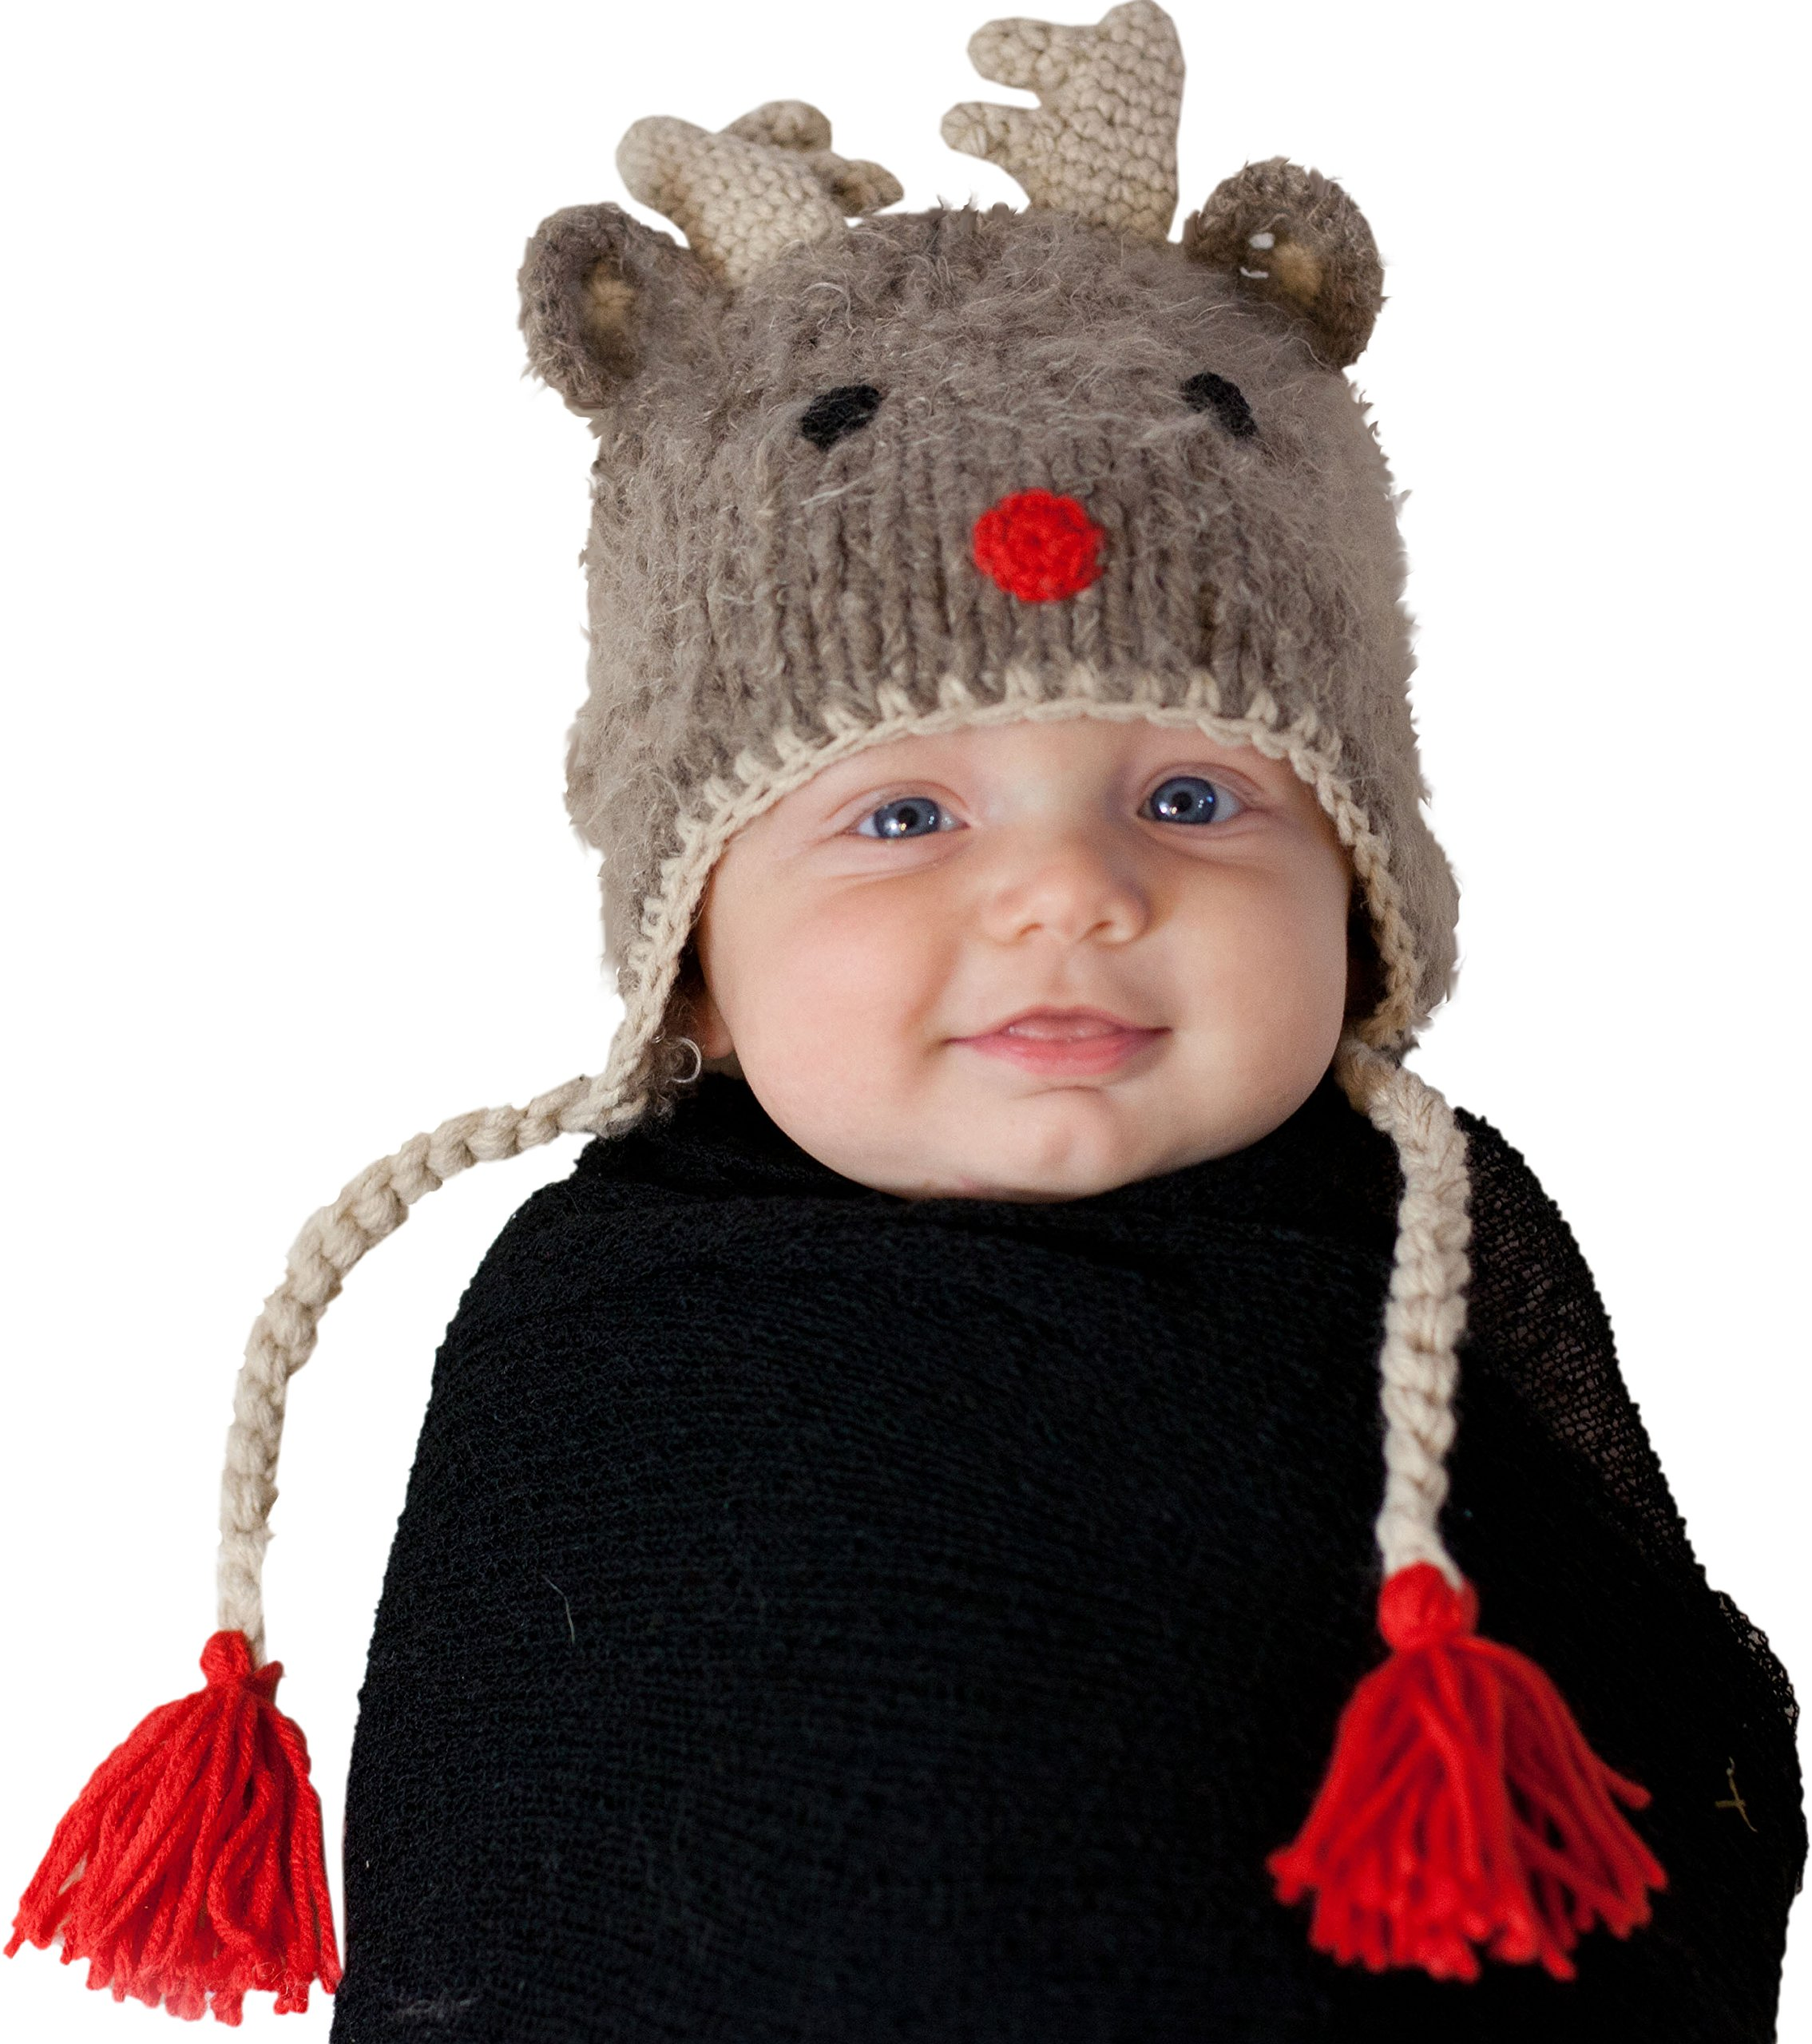 Huggalugs Boys or Girls Rudolph Reindeer Beanie Hat M Brown by Huggalugs